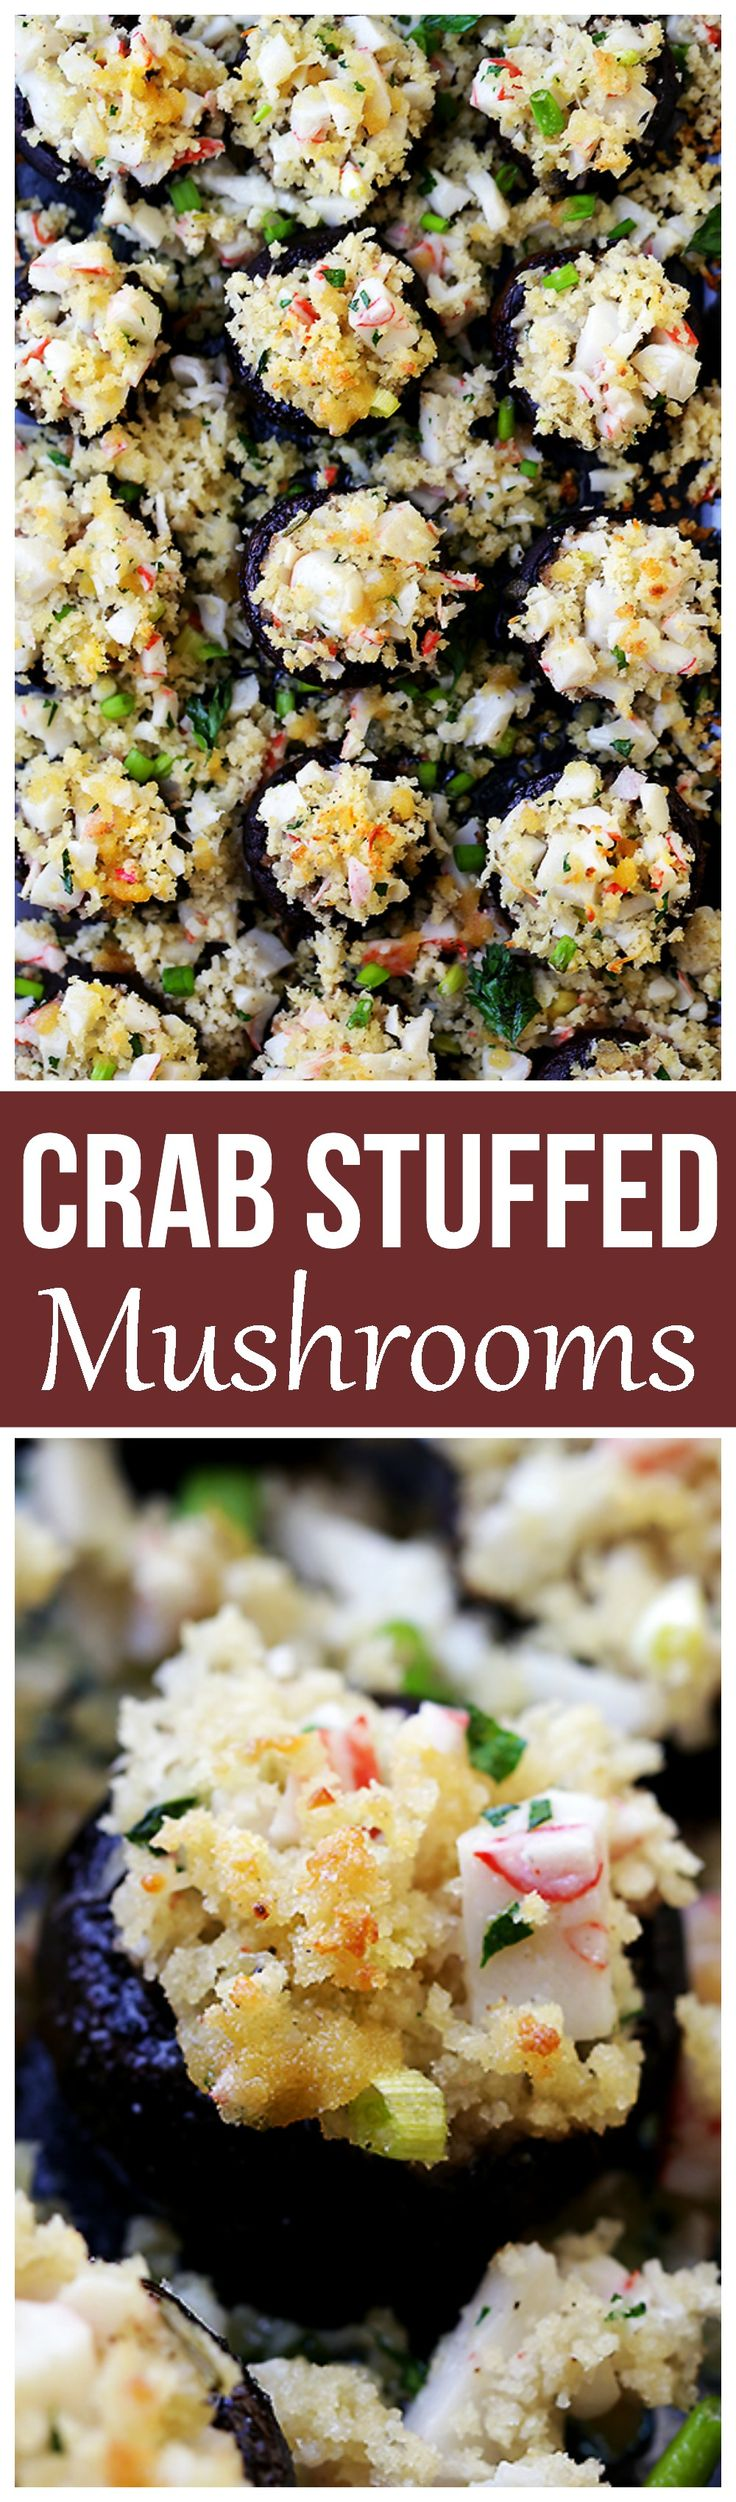 Crab Stuffed Mushrooms - Packed with crab meat and drizzled with garlic butter sauce, these delicious stuffed mushrooms are so easy to prepare, and they make for the perfect appetizer!